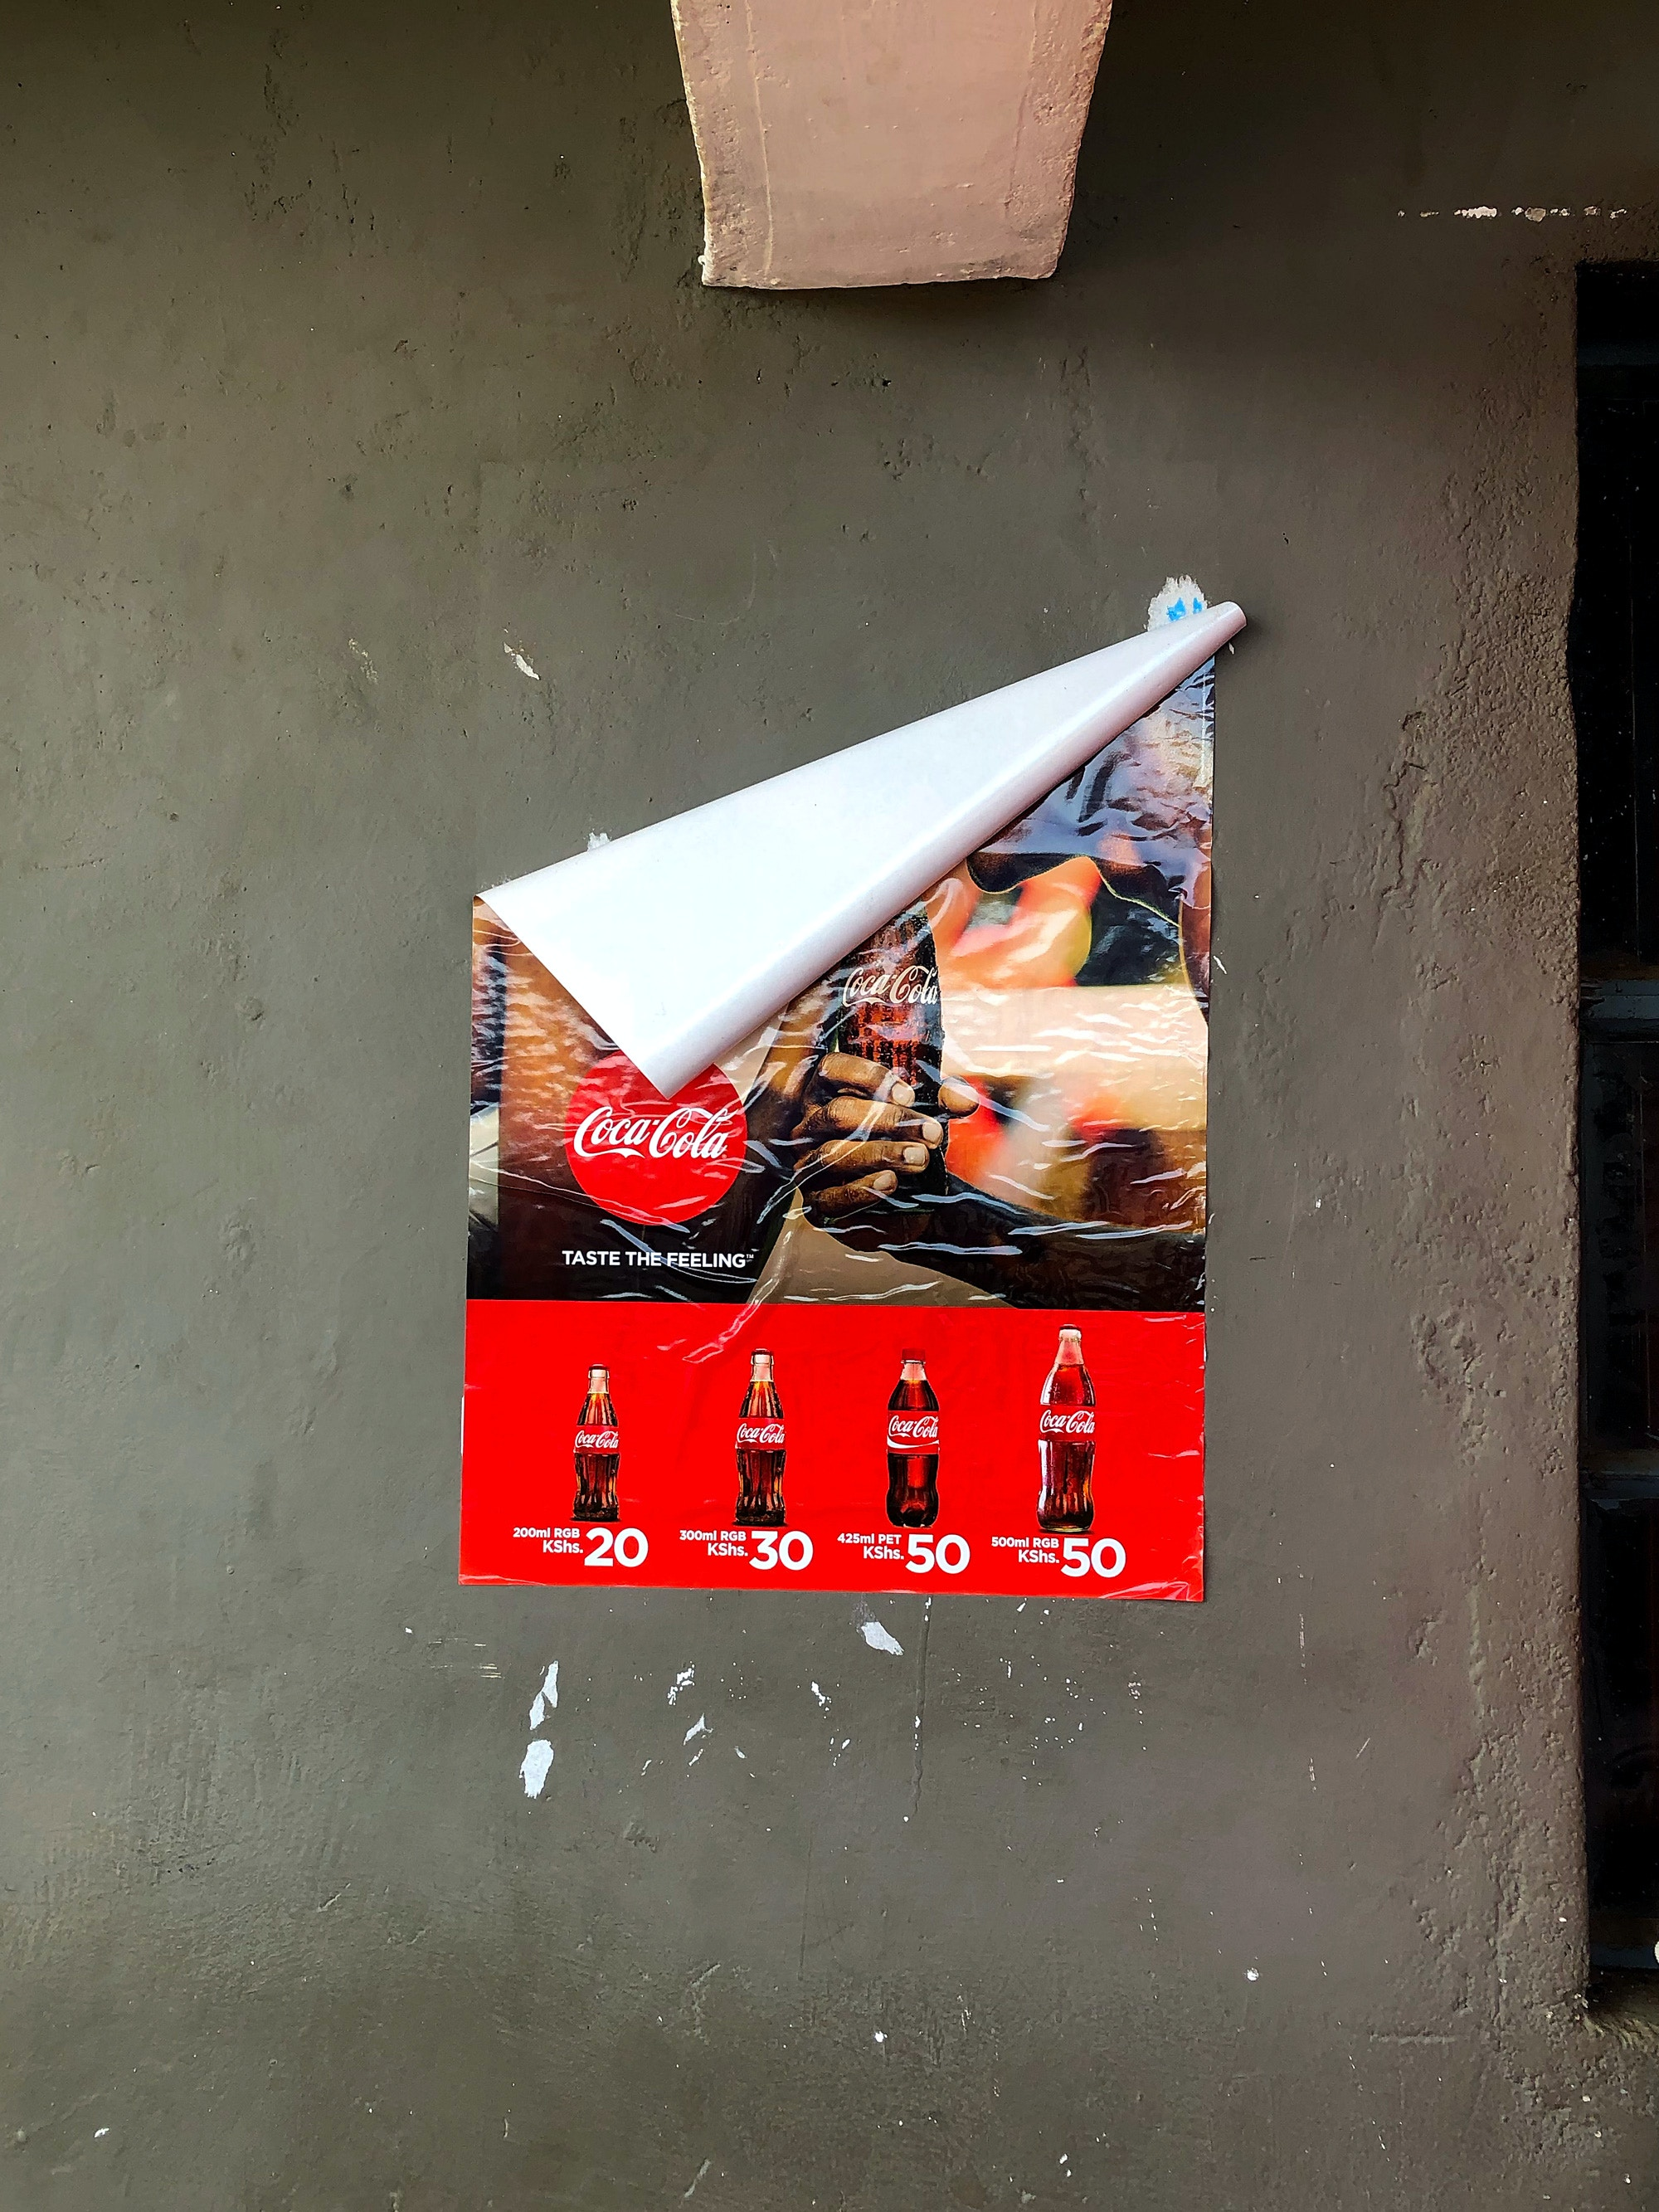 A Coca-Cola ad on the wall of a restaurant in Northern Kenya.